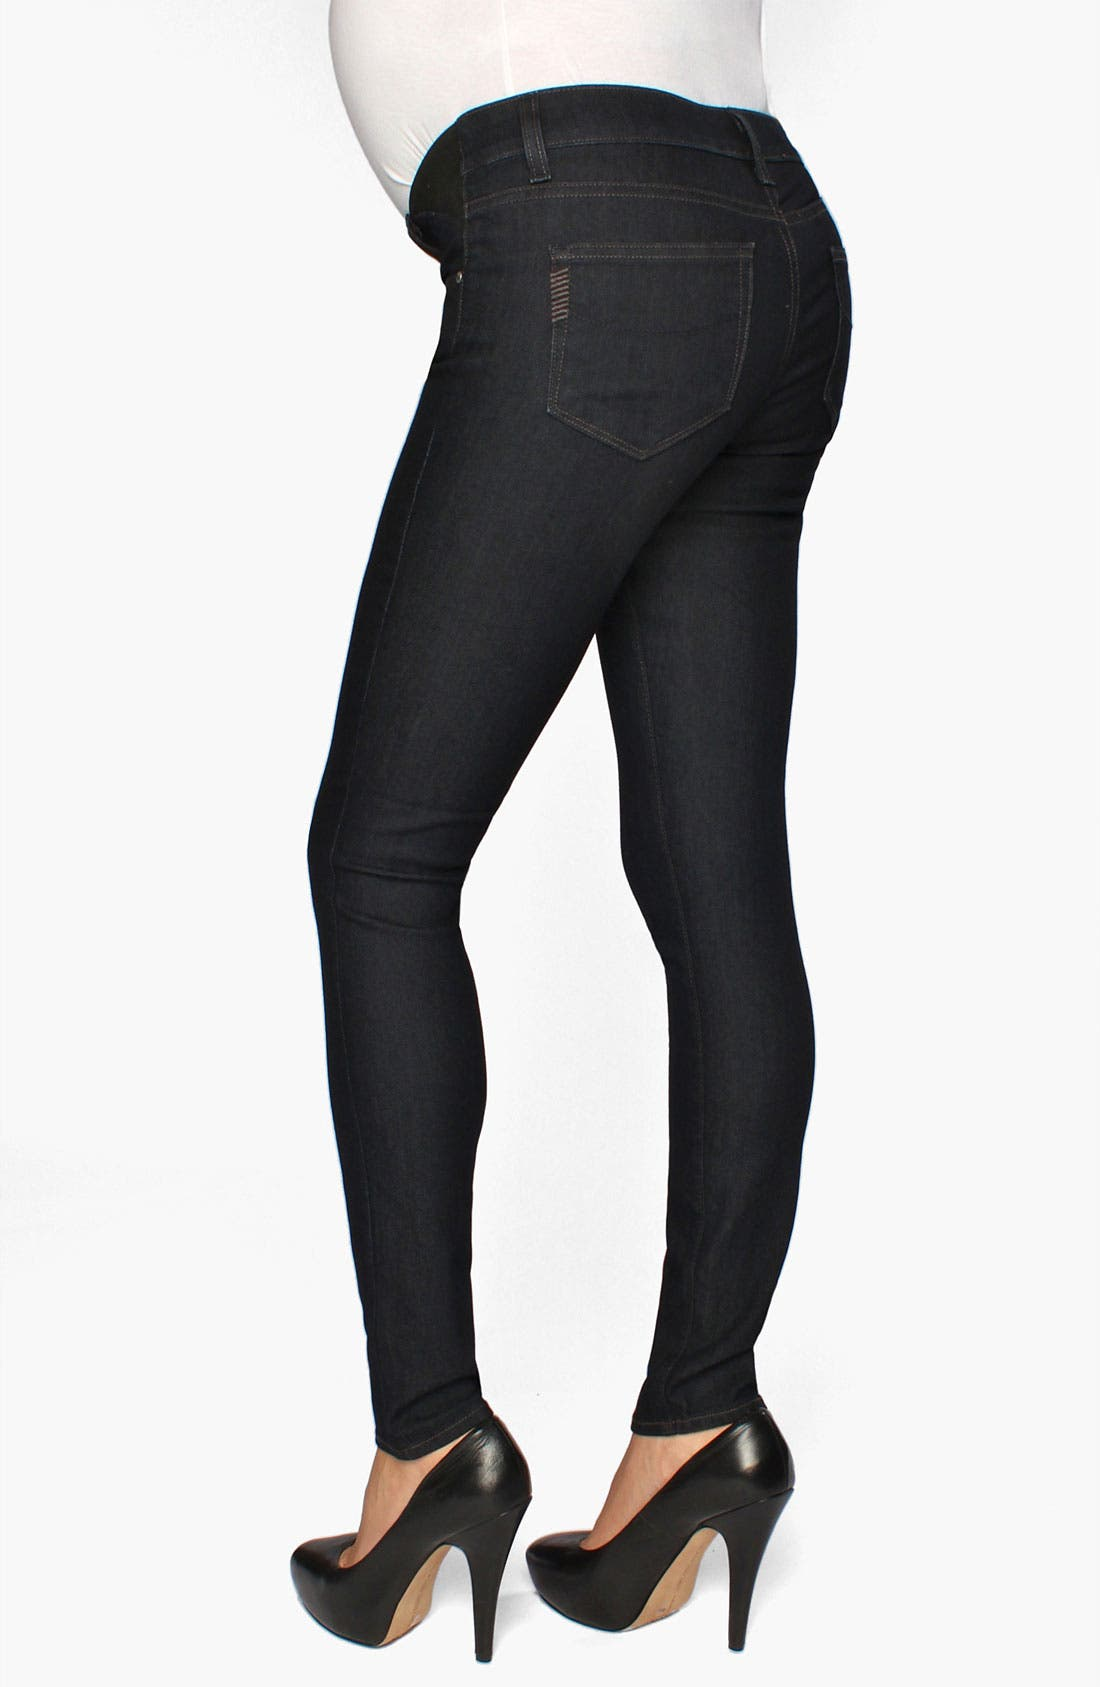 Main Image - Paige Denim 'Verdugo' Maternity Ultra Skinny Jeans (Twilight)